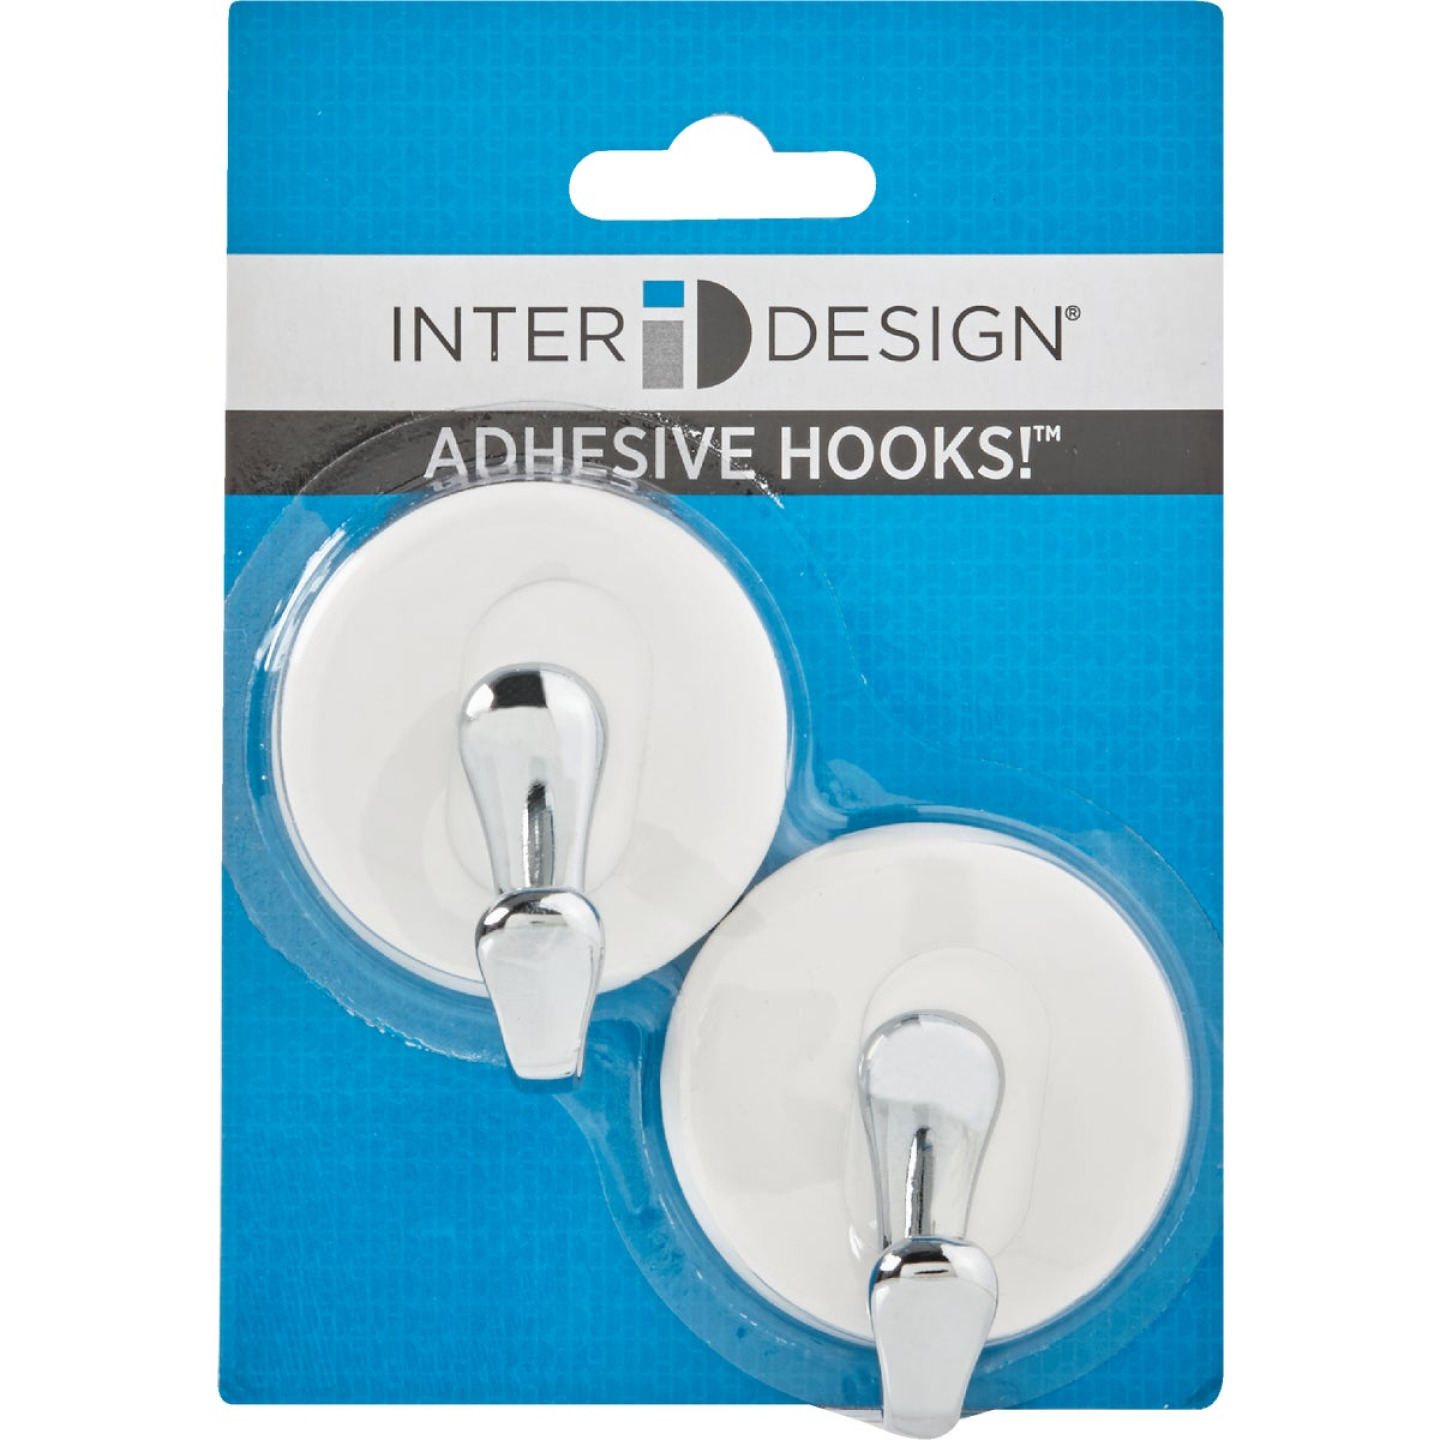 InterDesign Forma York White & Chrome Adhesive Hook Image 3